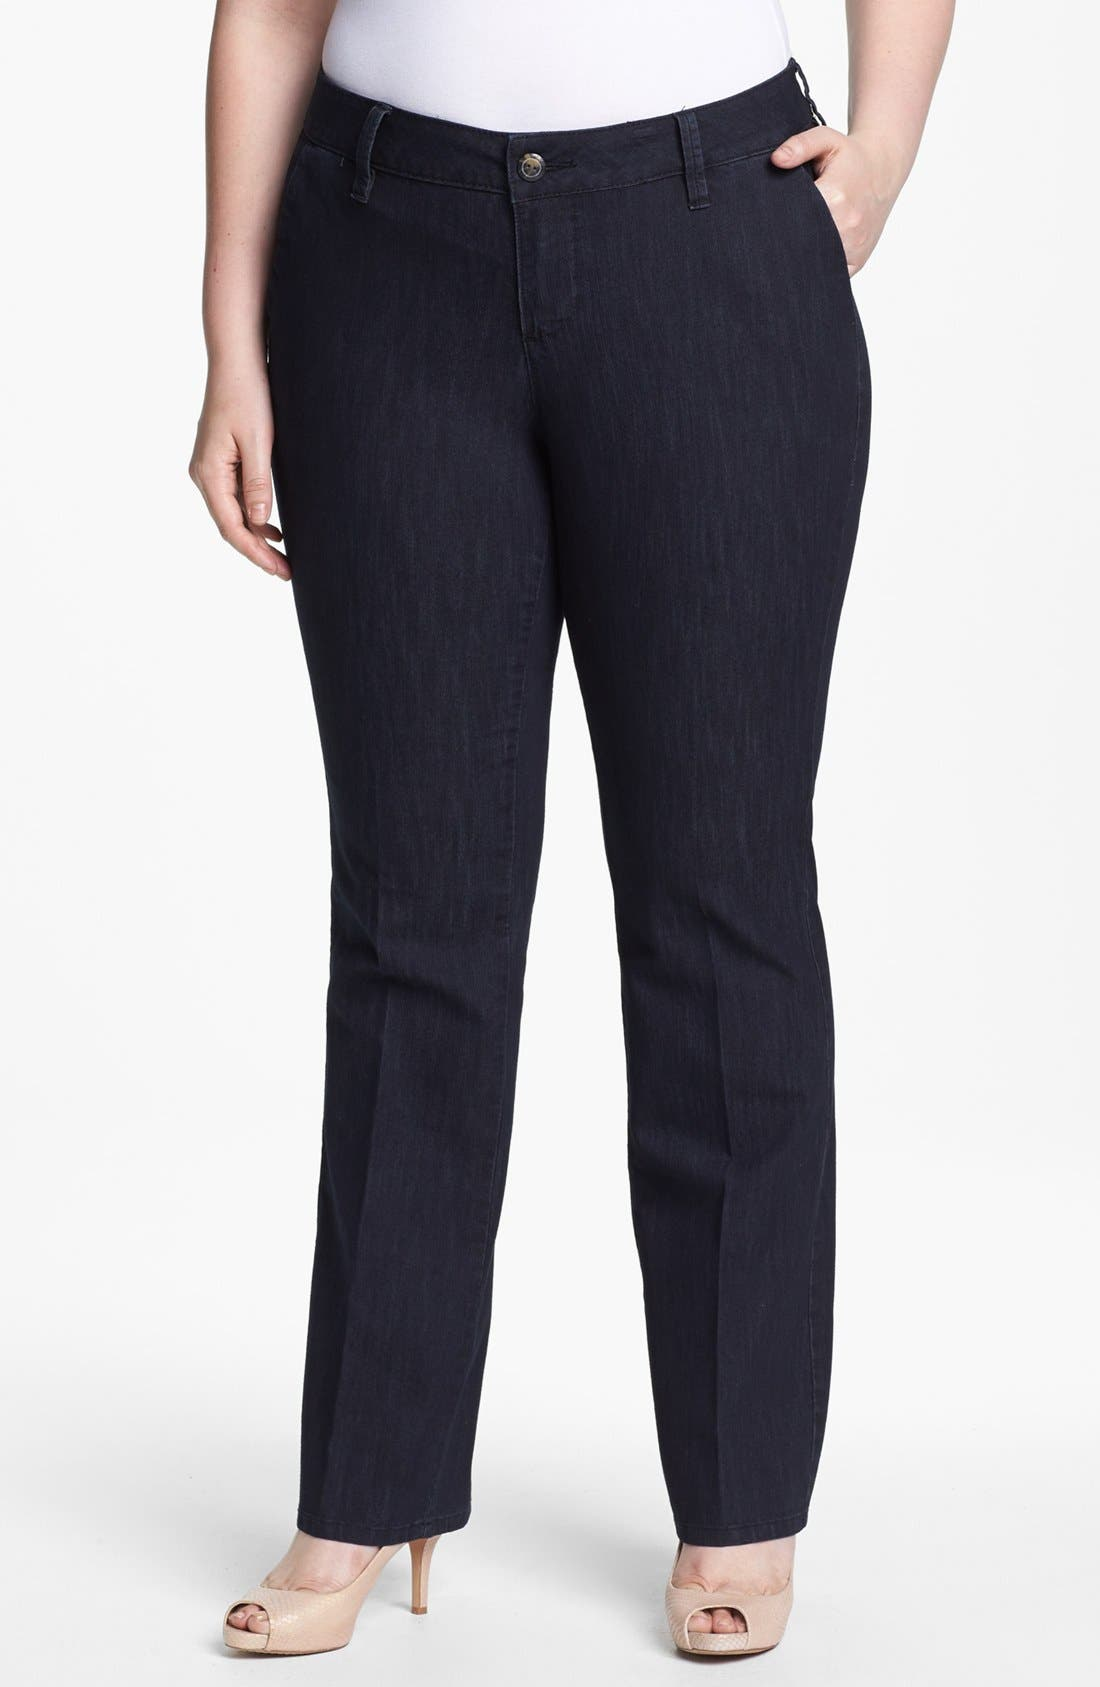 Alternate Image 1 Selected - Jag Jeans 'Elisha' Trouser Jeans (Plus Size)